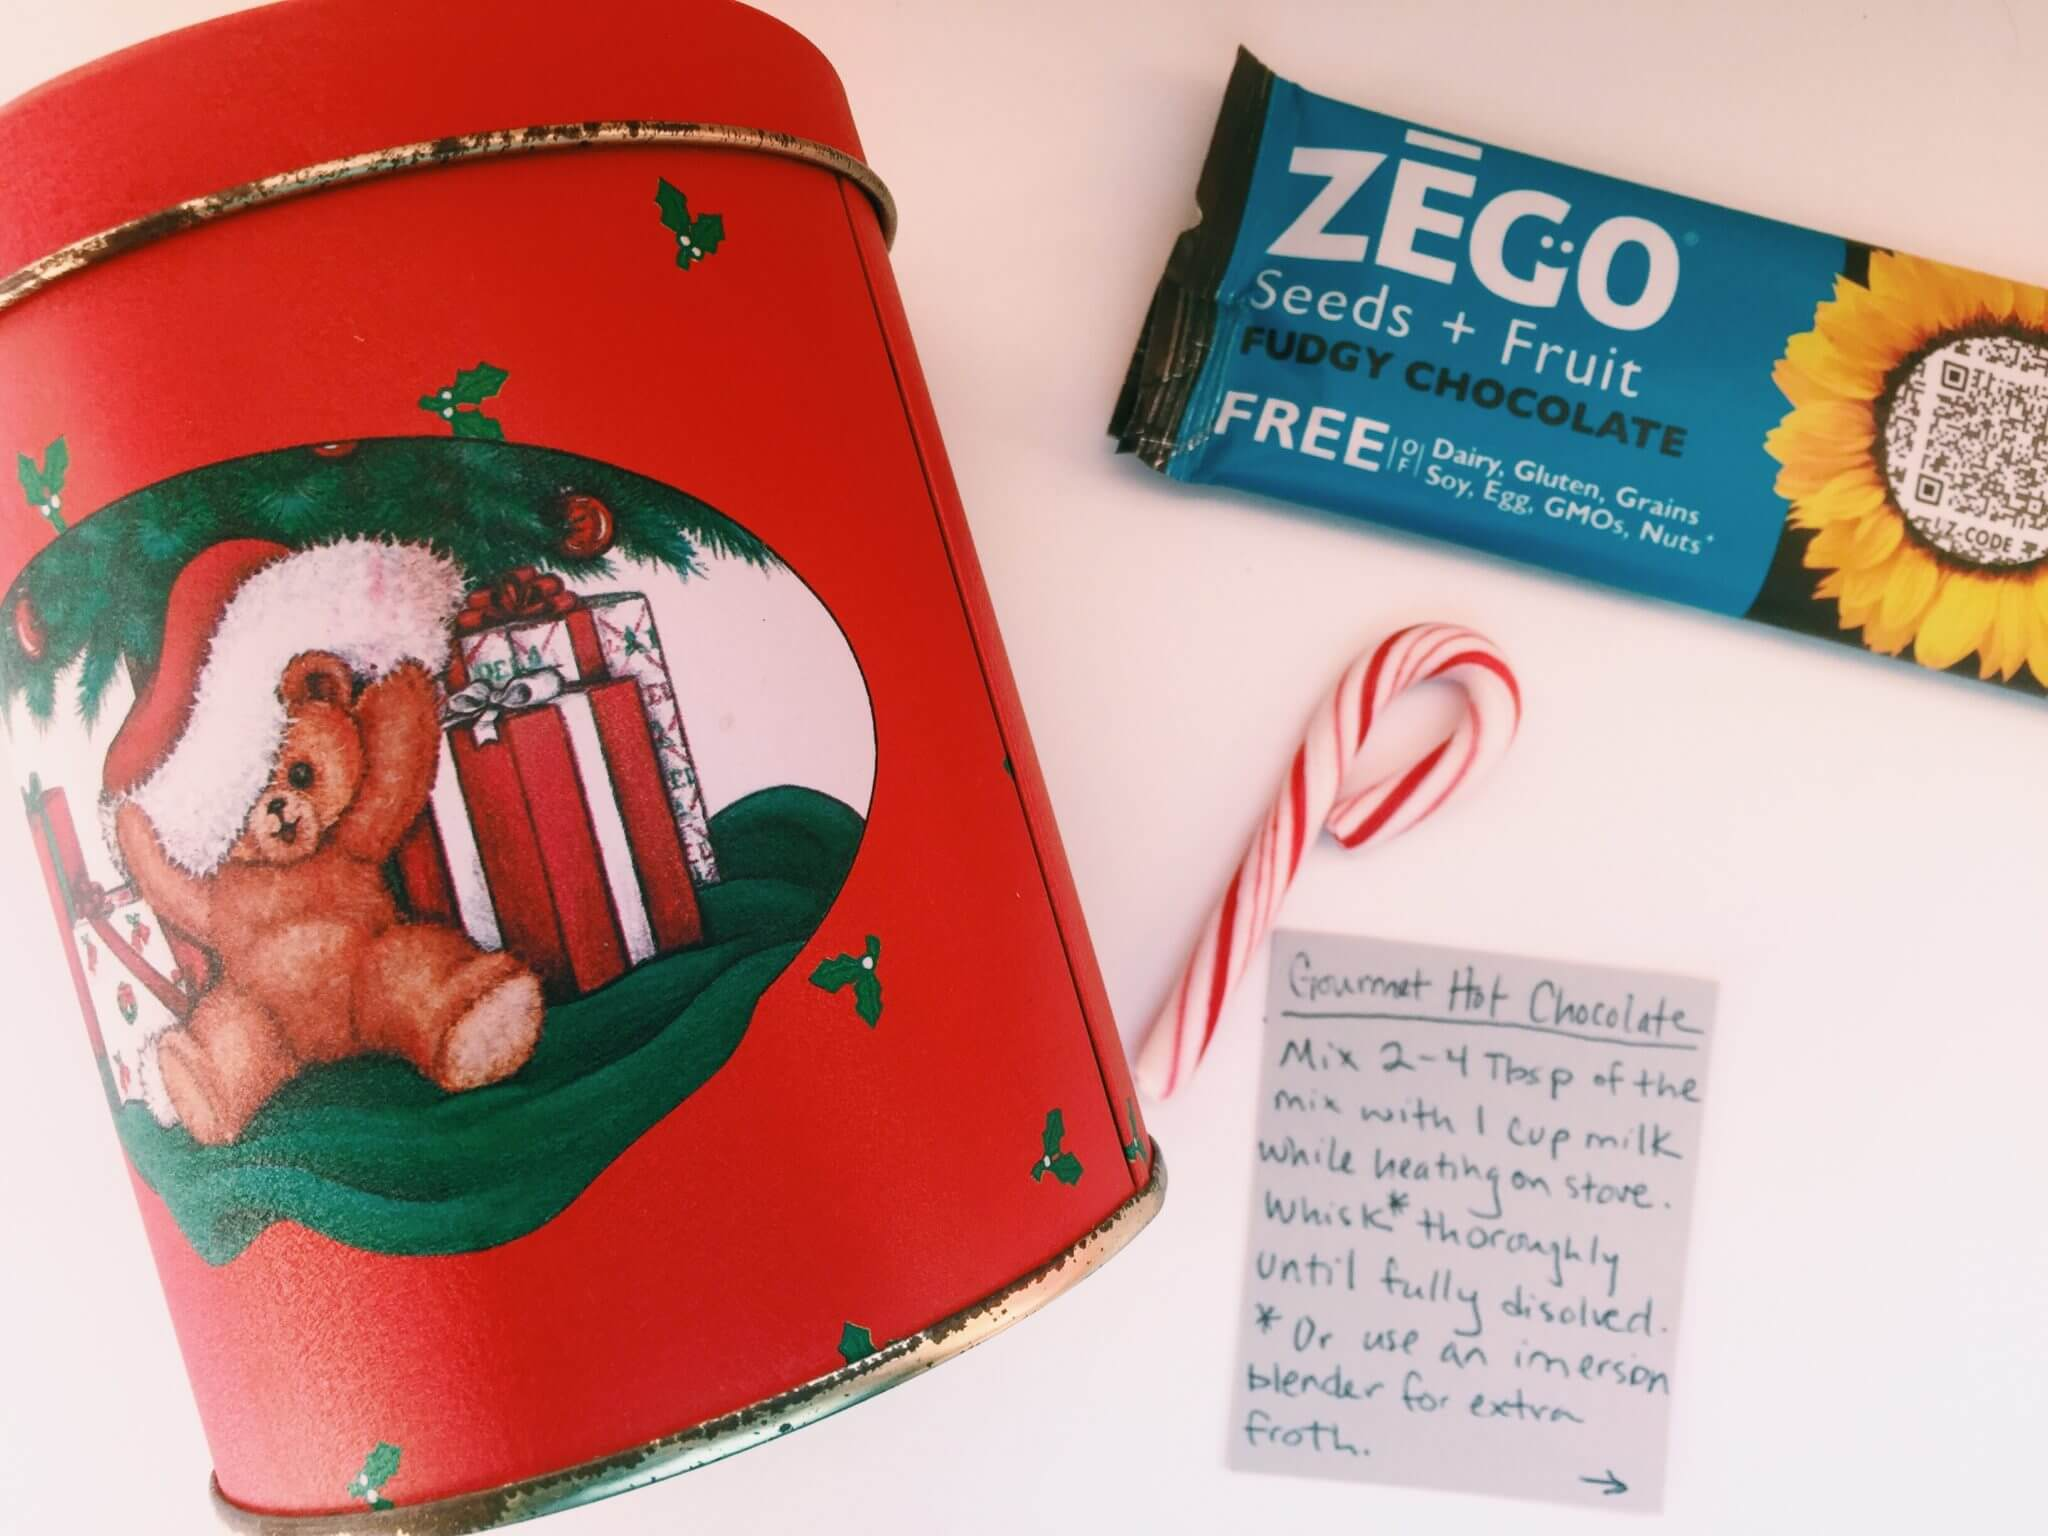 allergy friendly ZEGO bars inspired hot chocolate